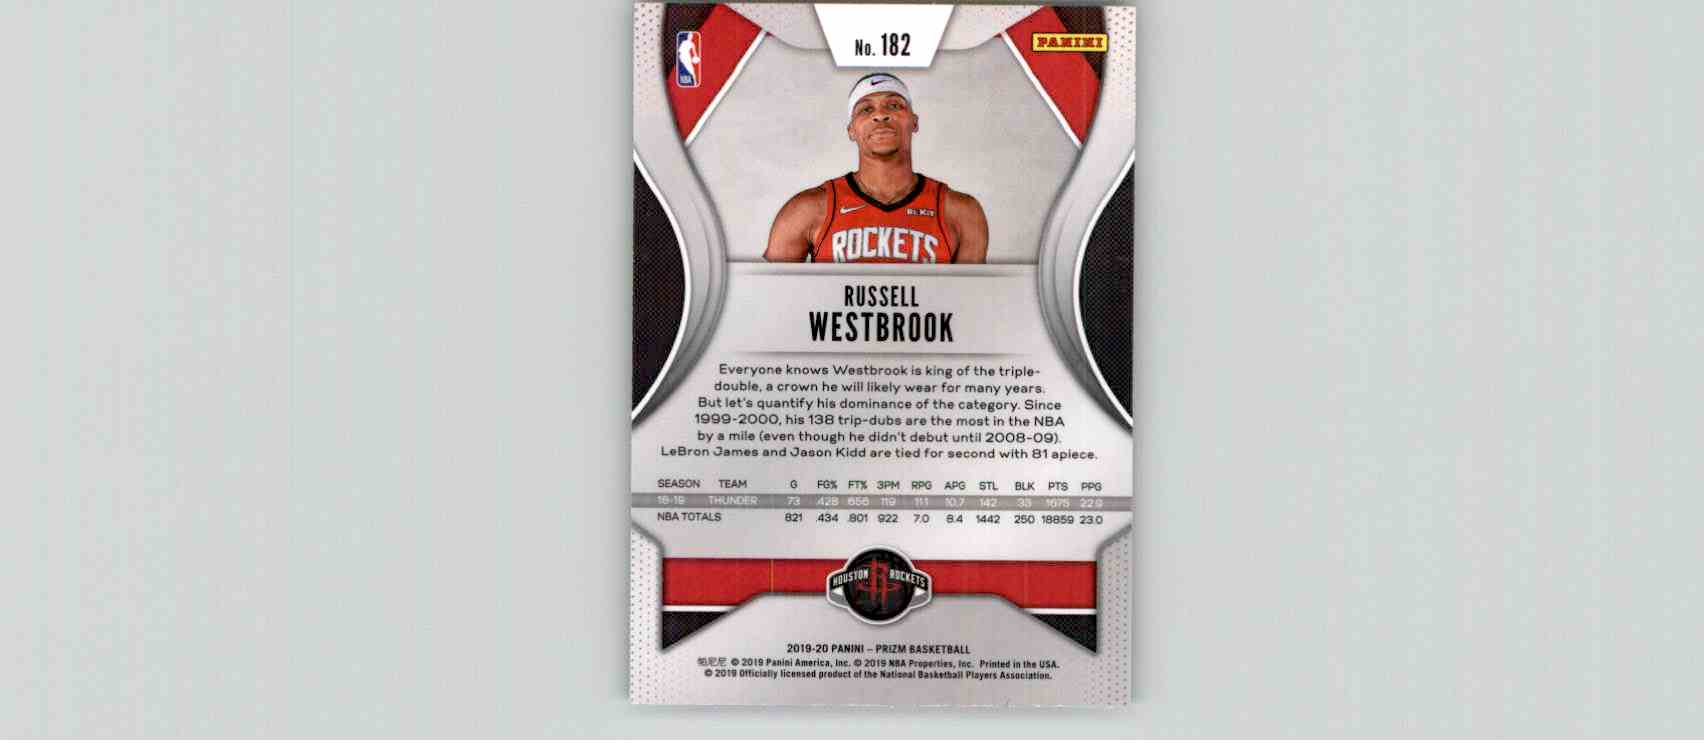 2019-20 Panini Prizm Basketball Prizm Russell Westbrook #182 card back image